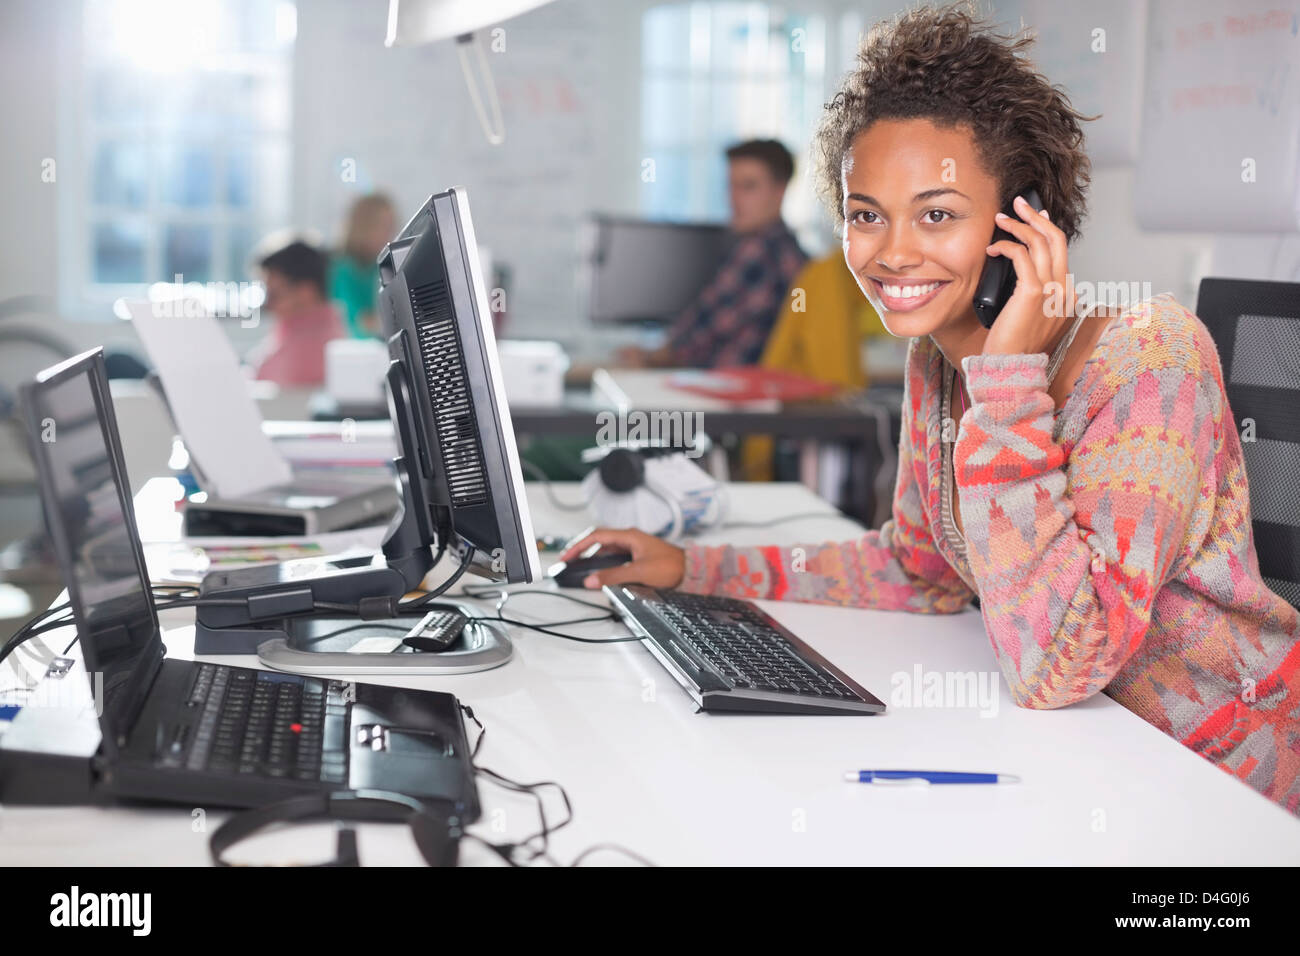 Businesswoman talking on phone at desk - Stock Image